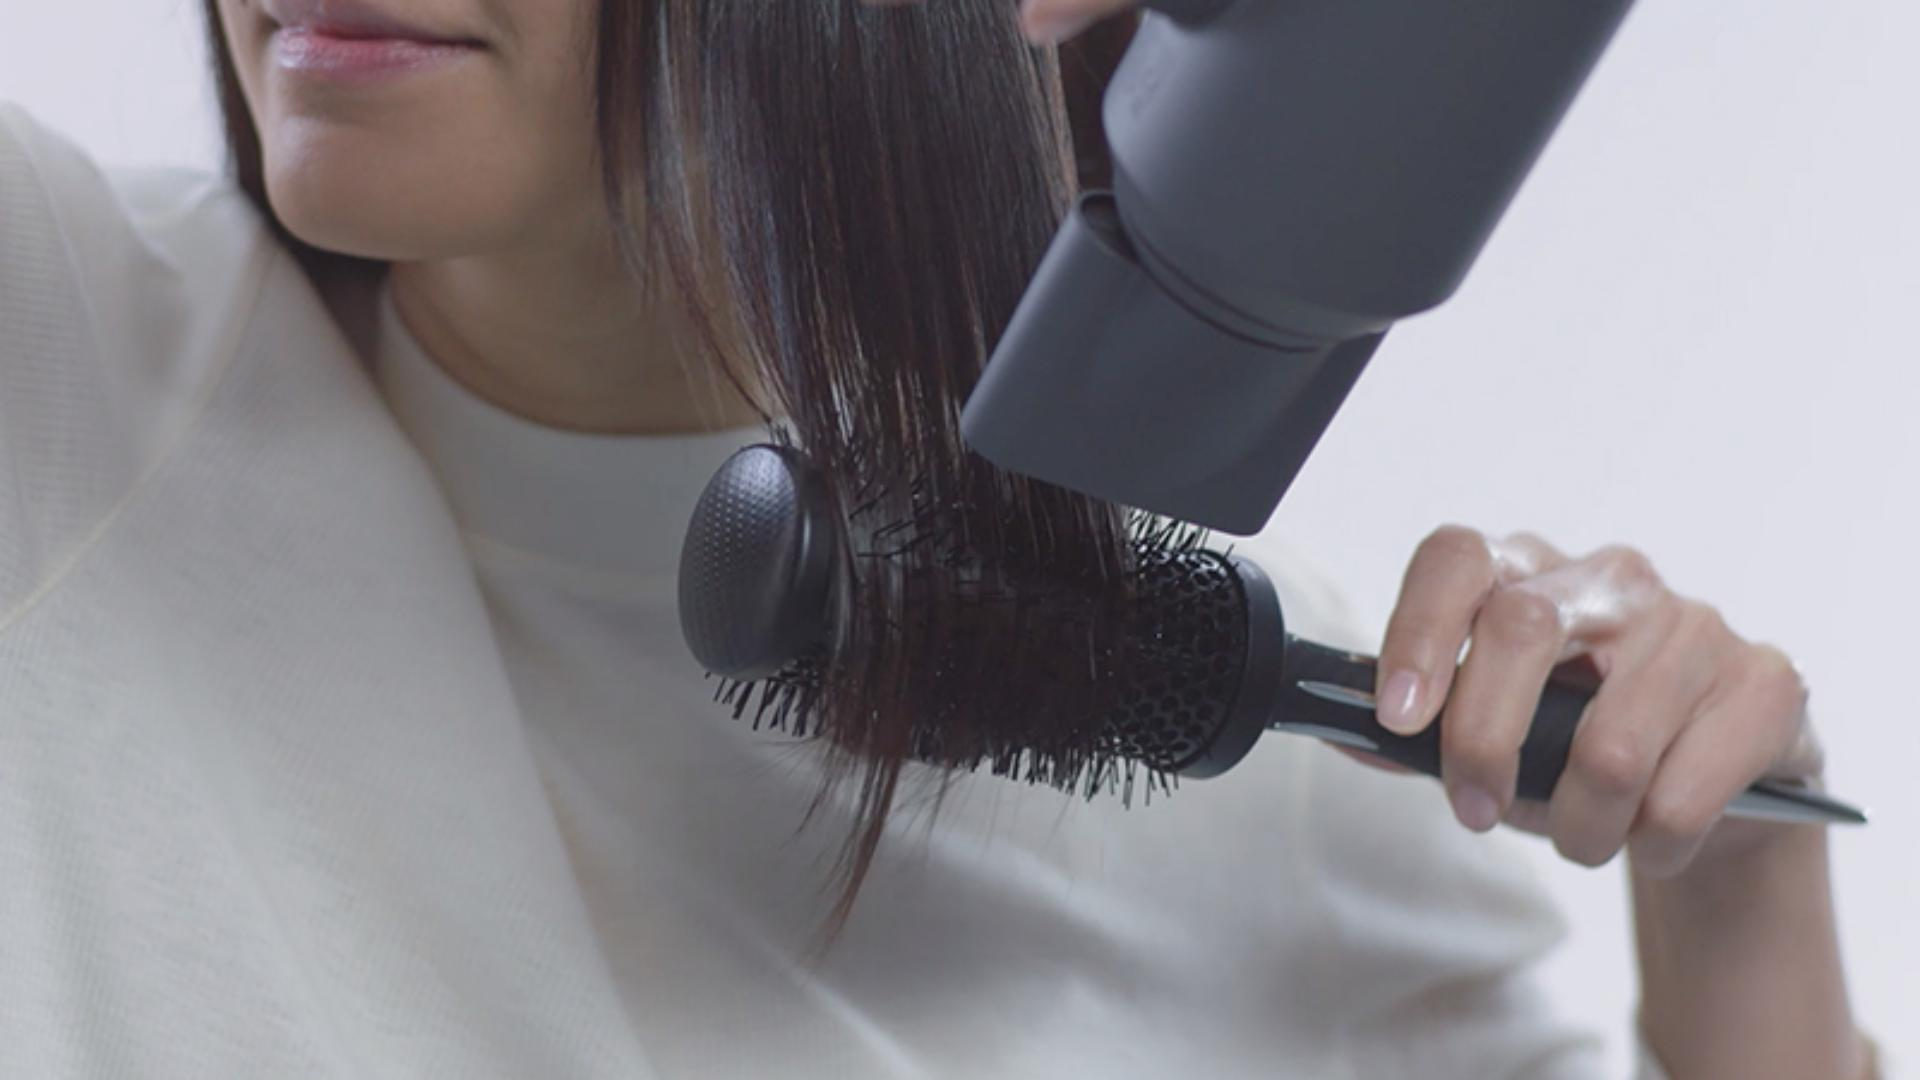 Video about how to use the Dyson Supersonic™ hair dryer Smoothing nozzle